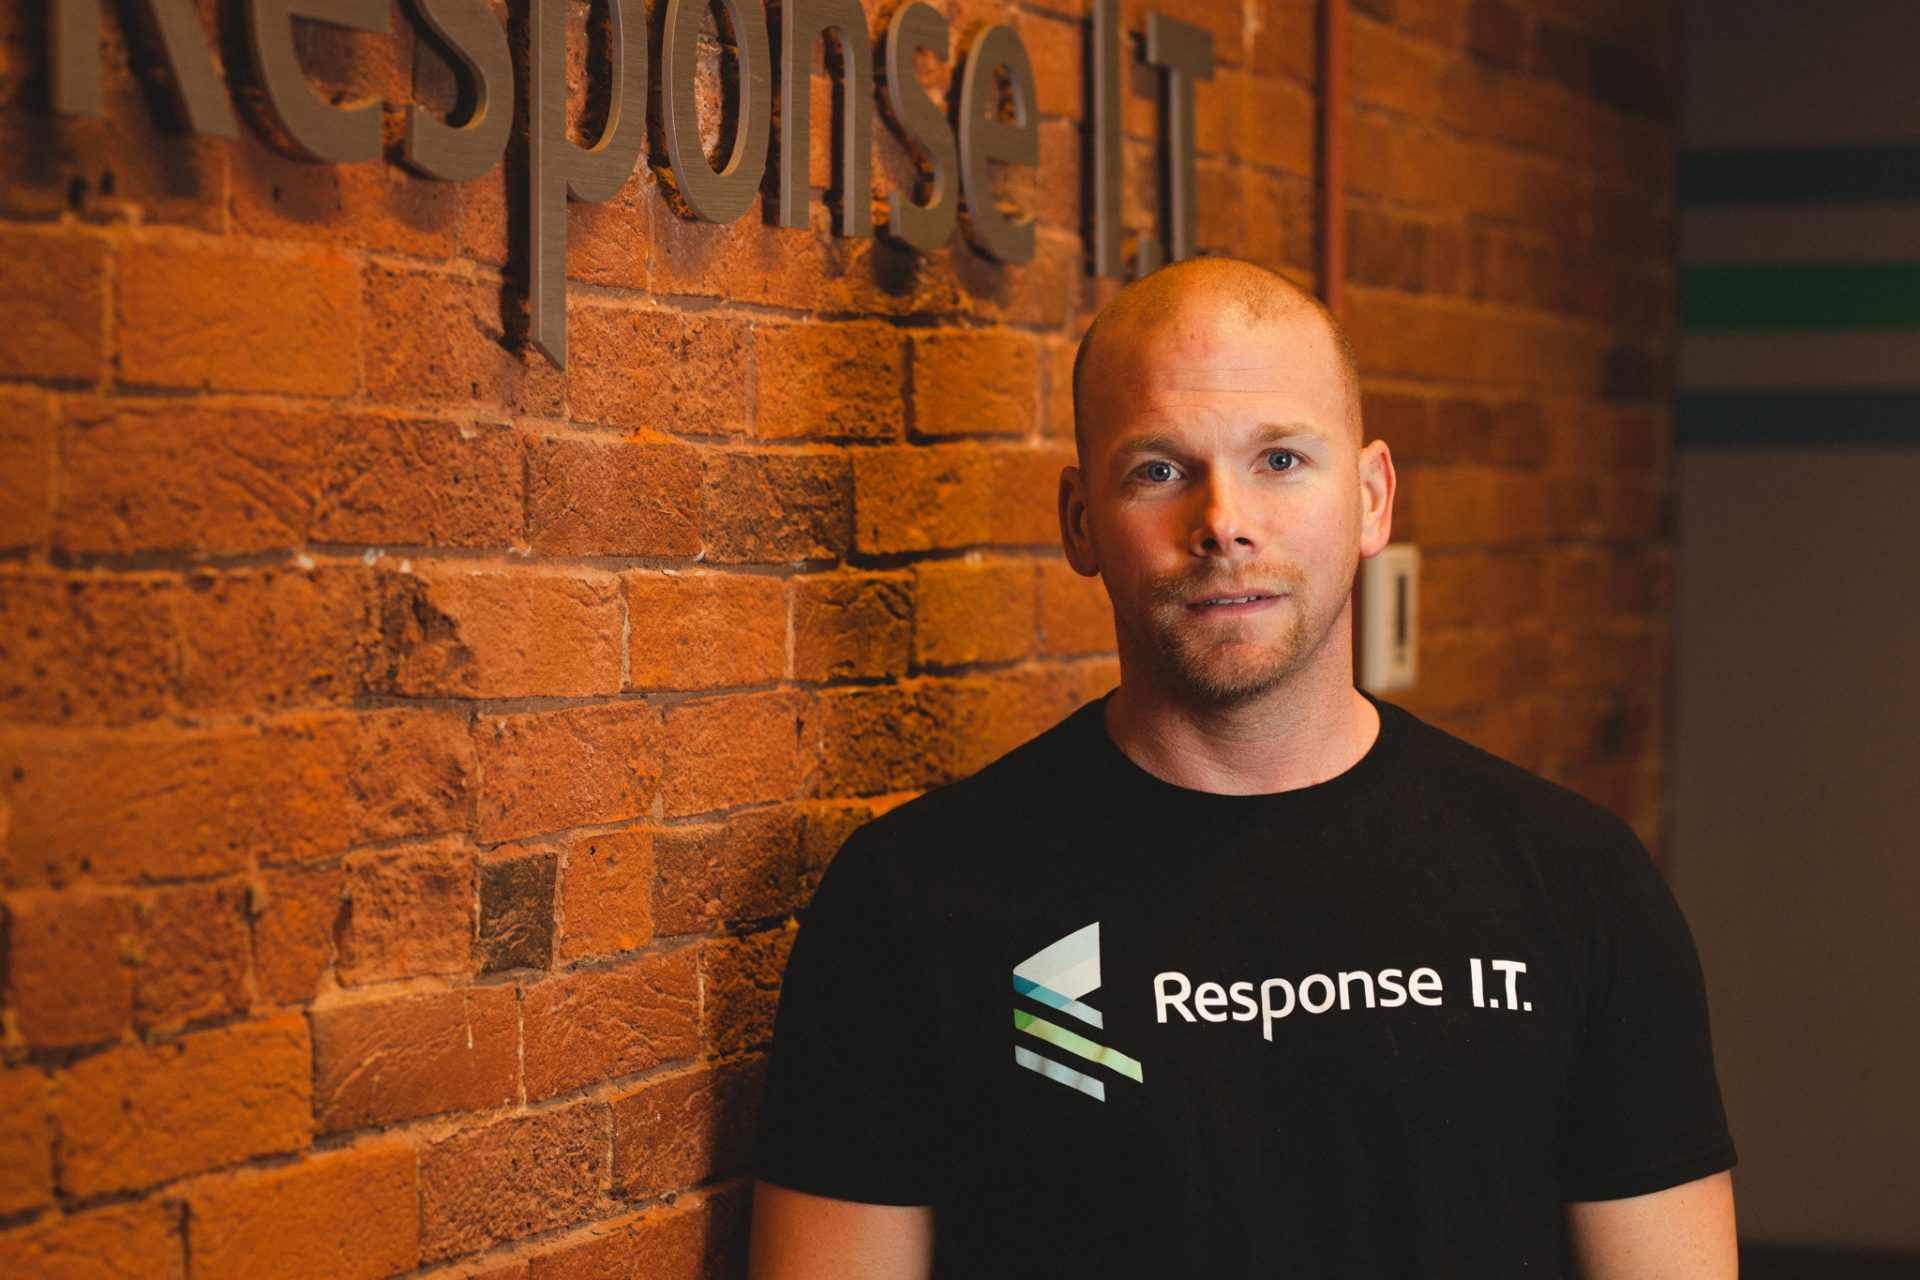 Response I.T. Kingston | Our Team